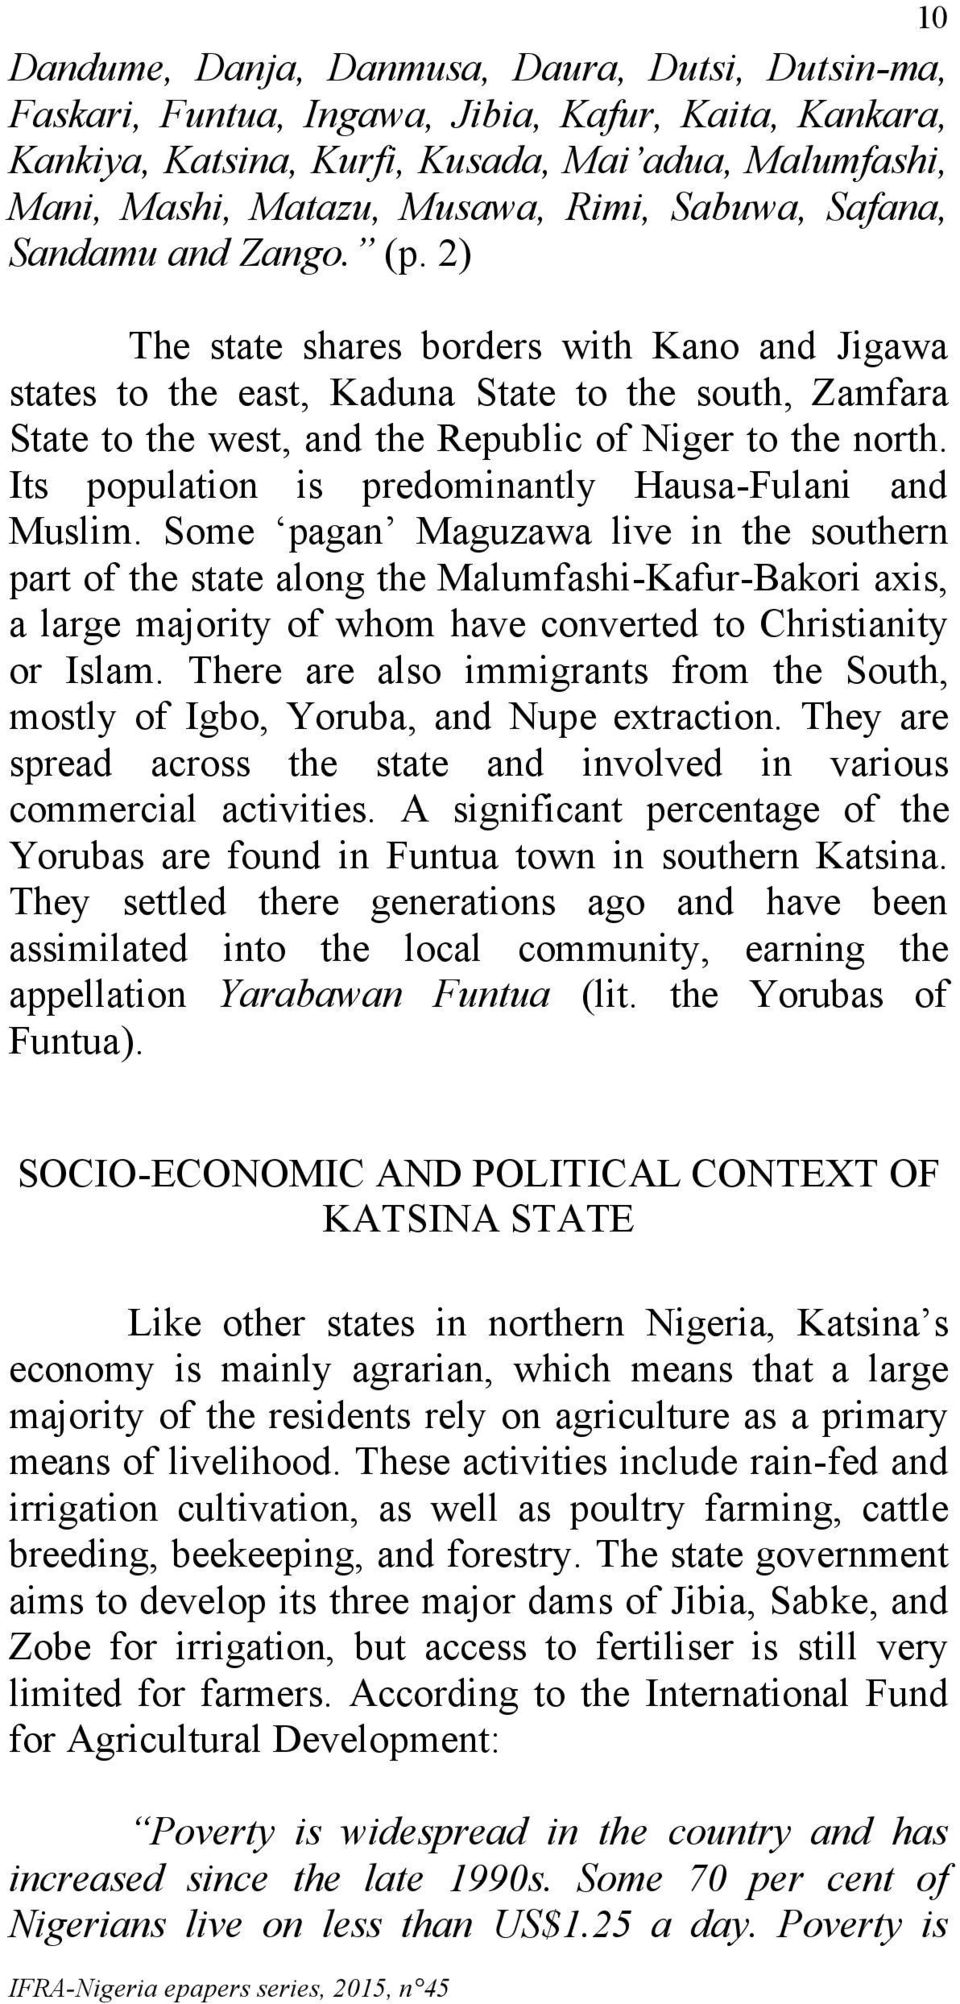 2) The state shares borders with Kano and Jigawa states to the east, Kaduna State to the south, Zamfara State to the west, and the Republic of Niger to the north.